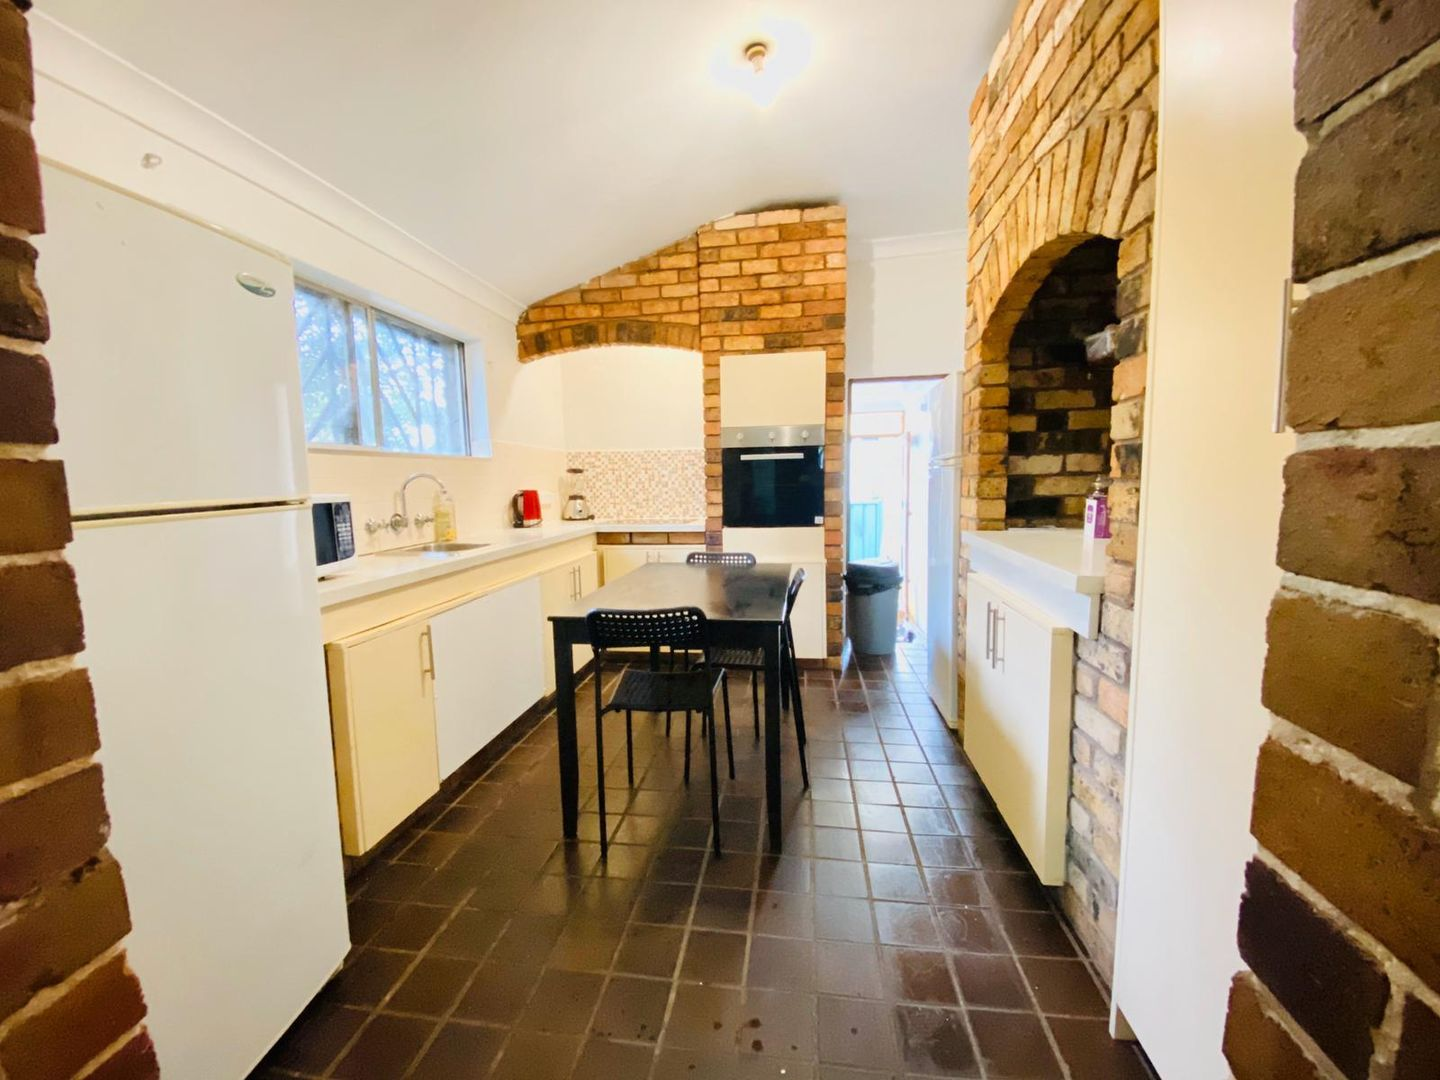 89 Newman St, Newtown NSW 2042, Image 0